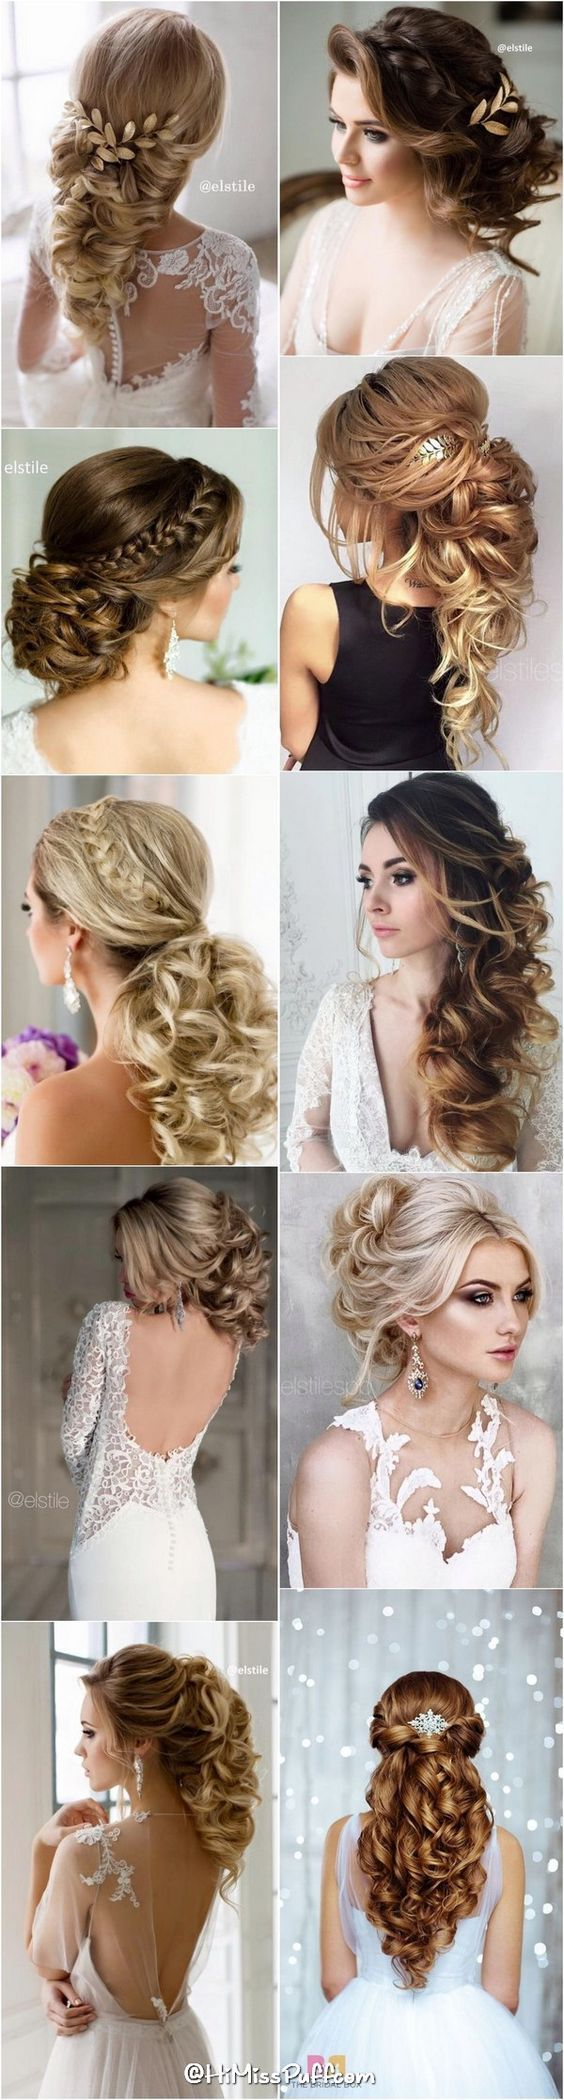 best images about formatura on pinterest